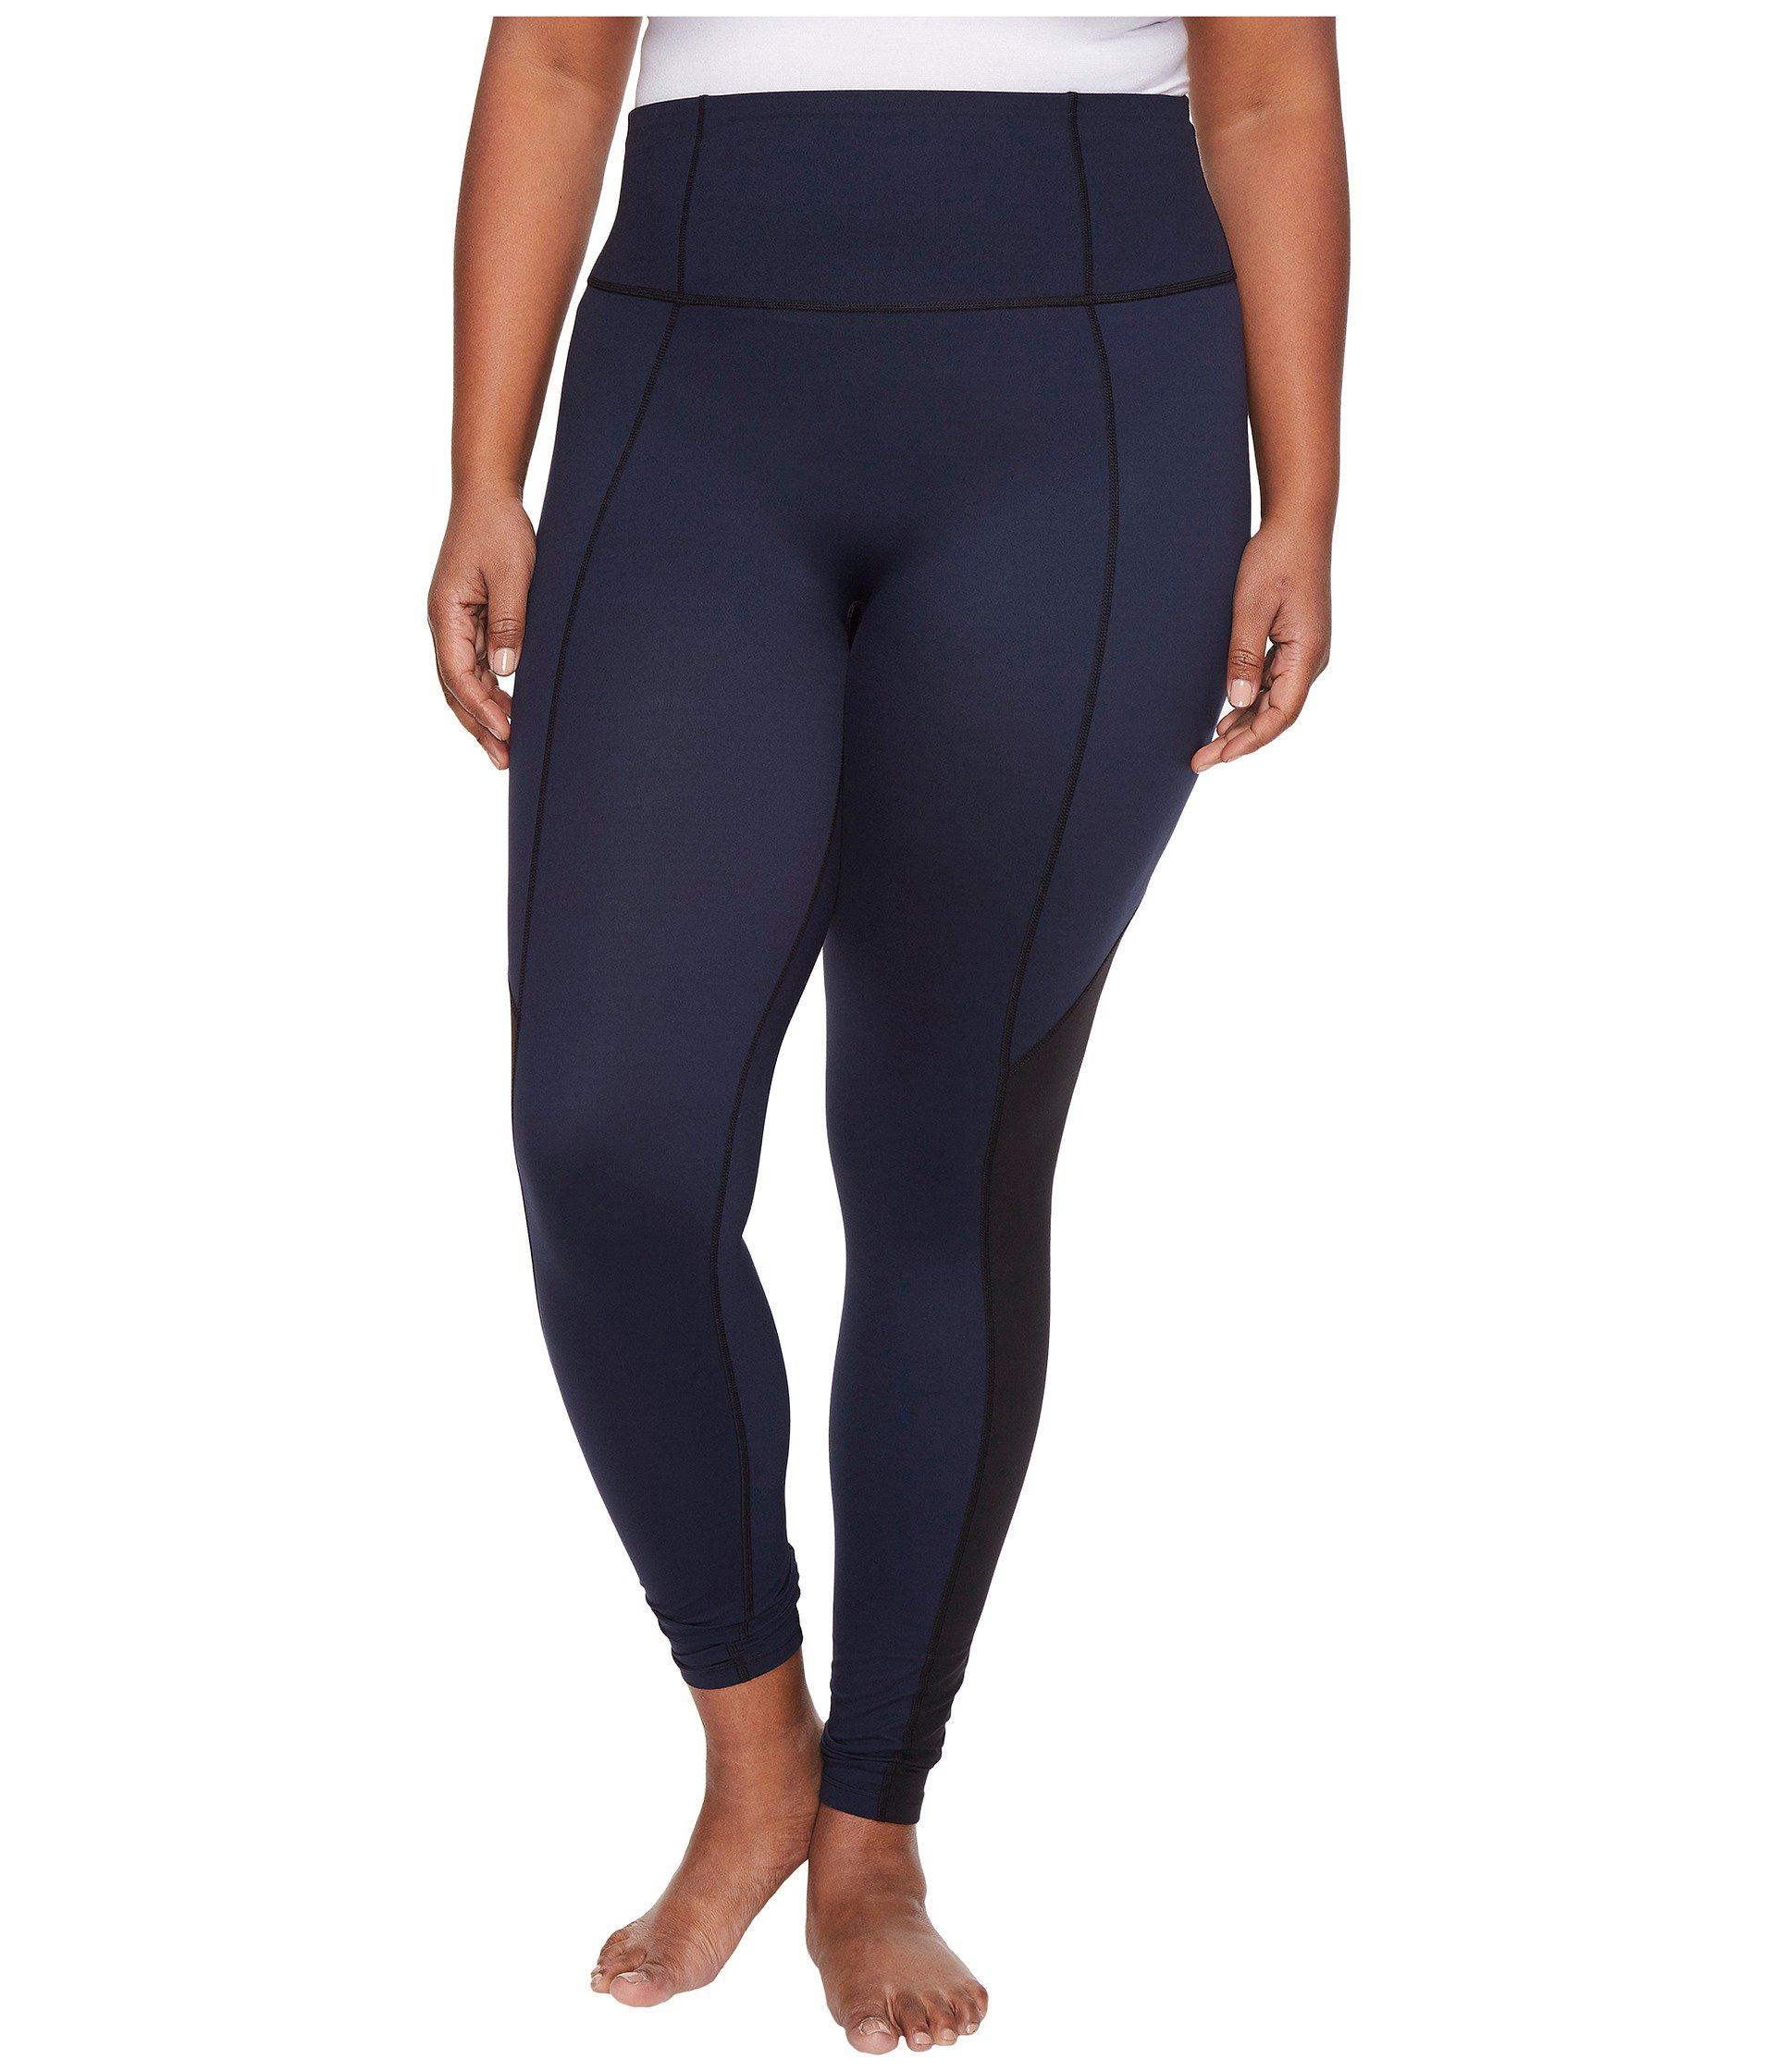 e92224ffdf3 Spanx Plus Size Active Compression Crop Pants in Blue - Lyst